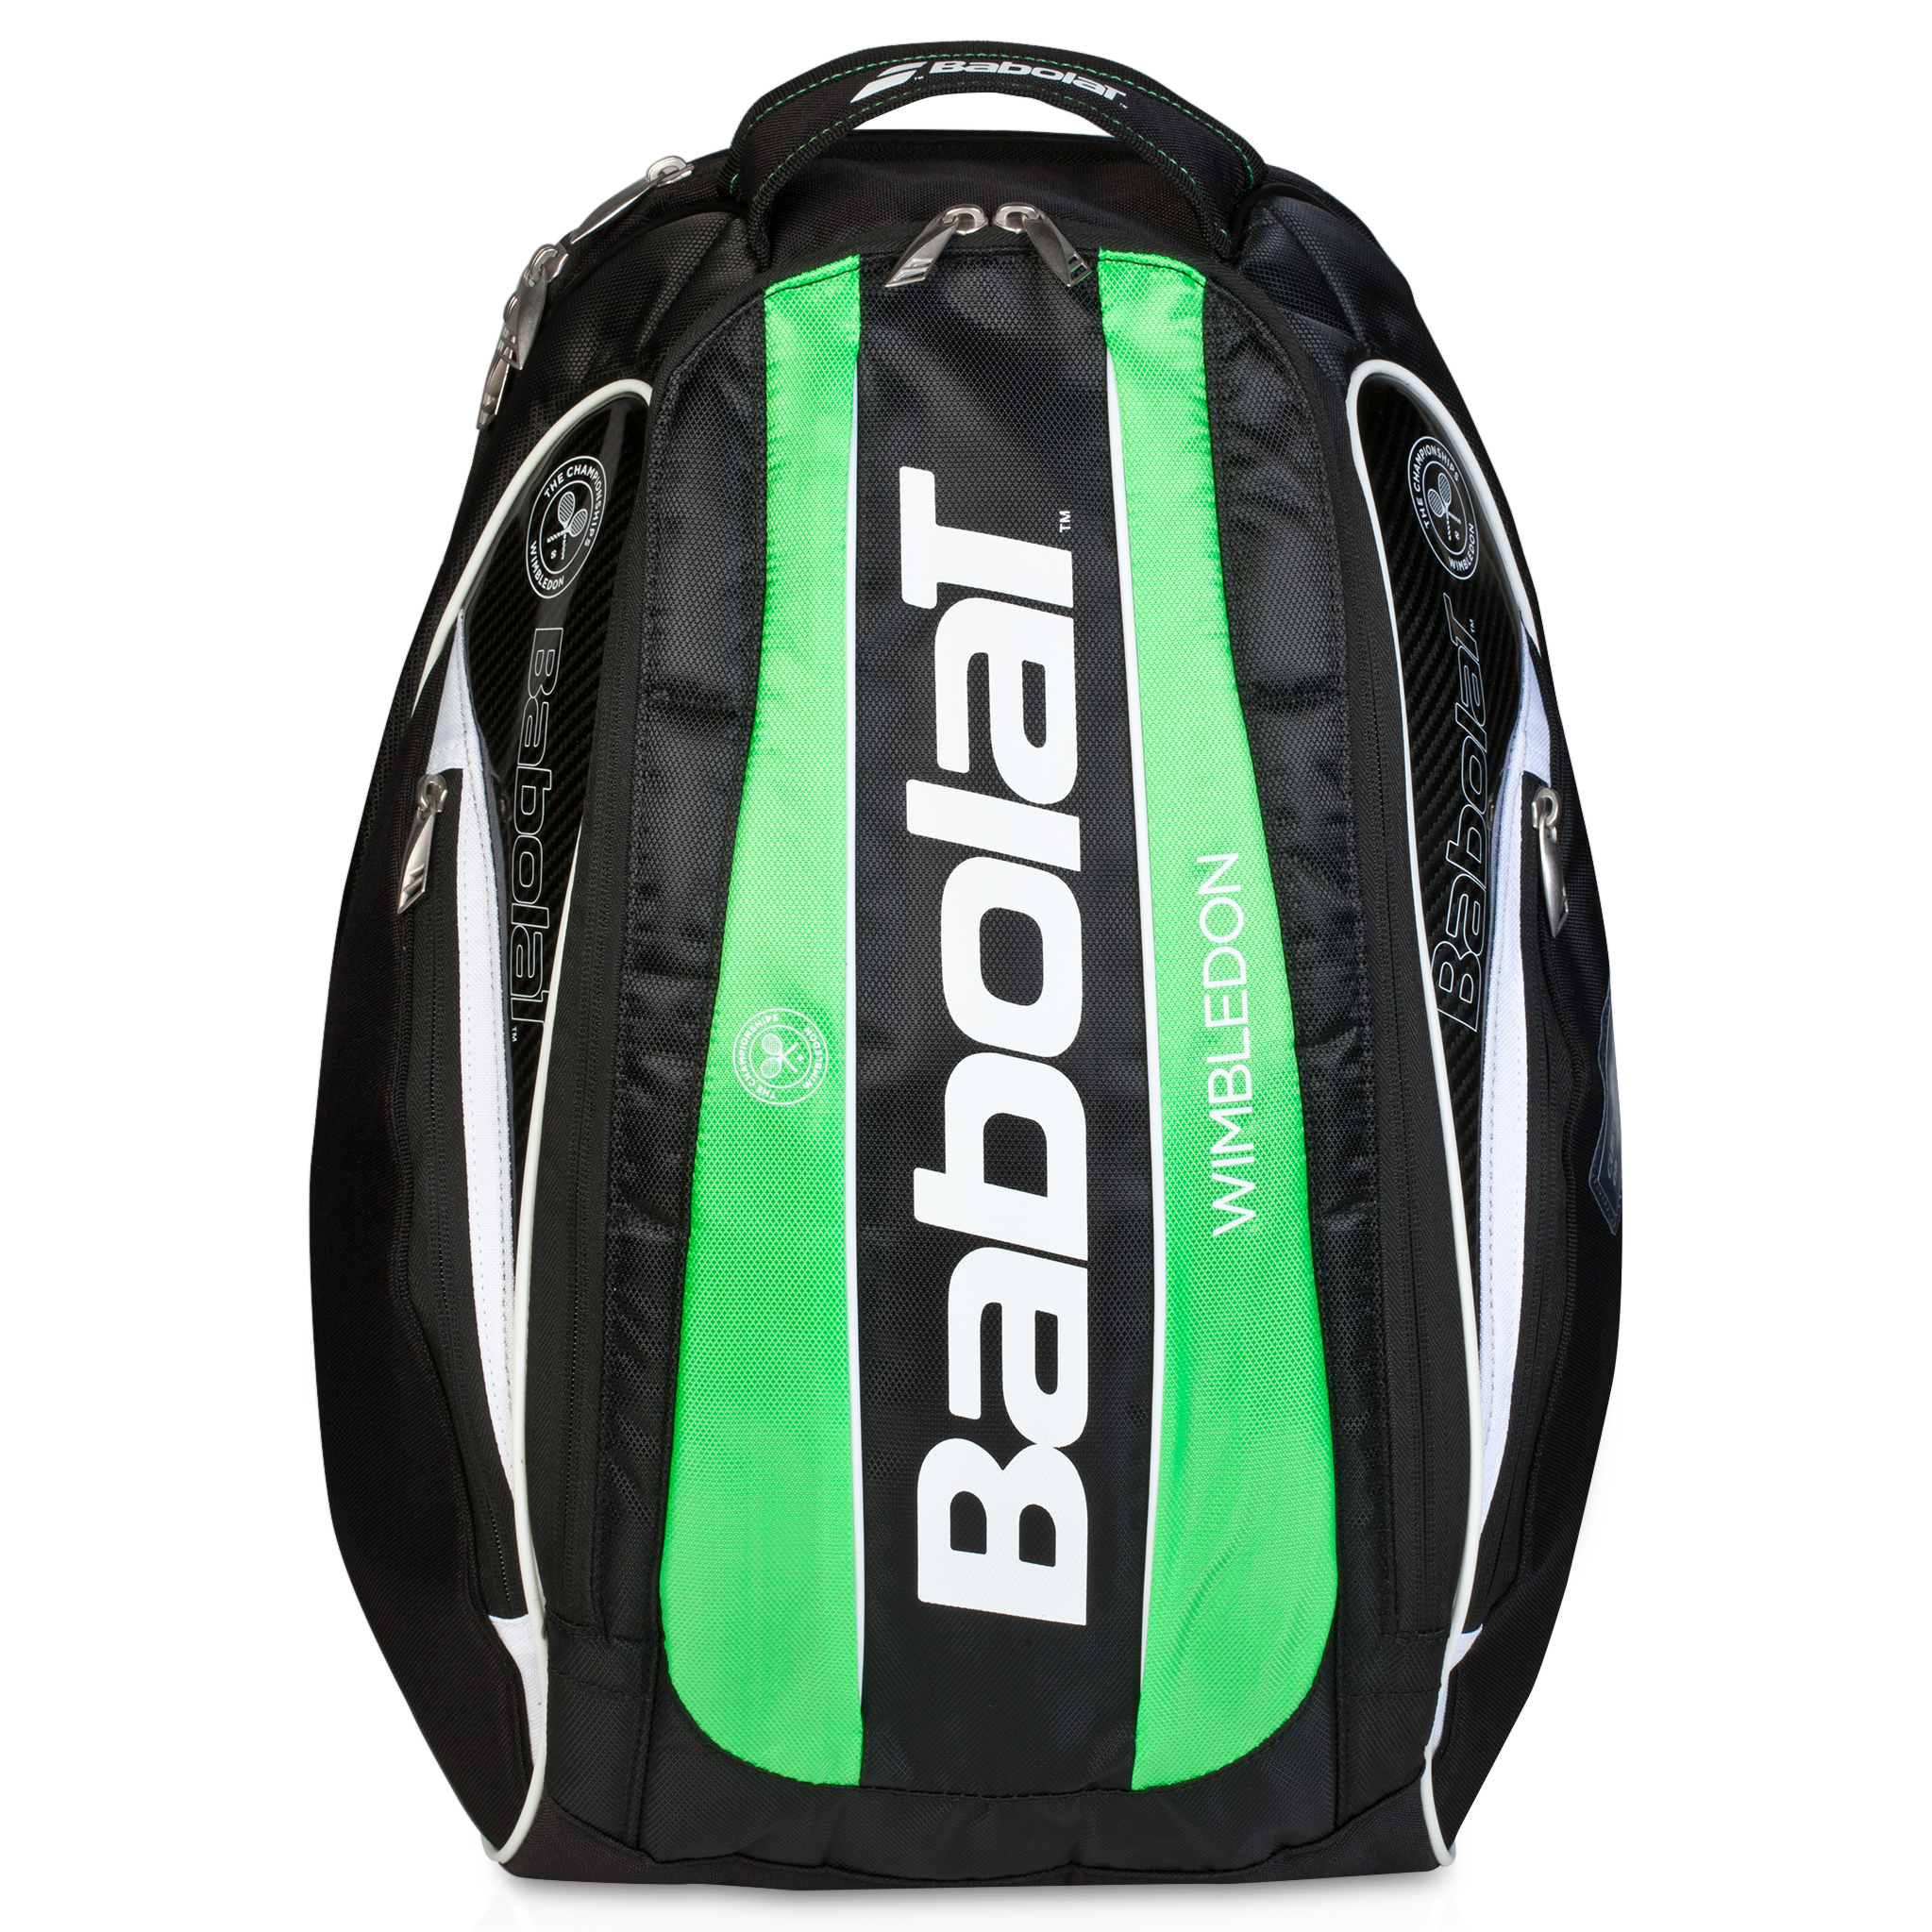 Wimbledon Team Backpack - Black/Green Black